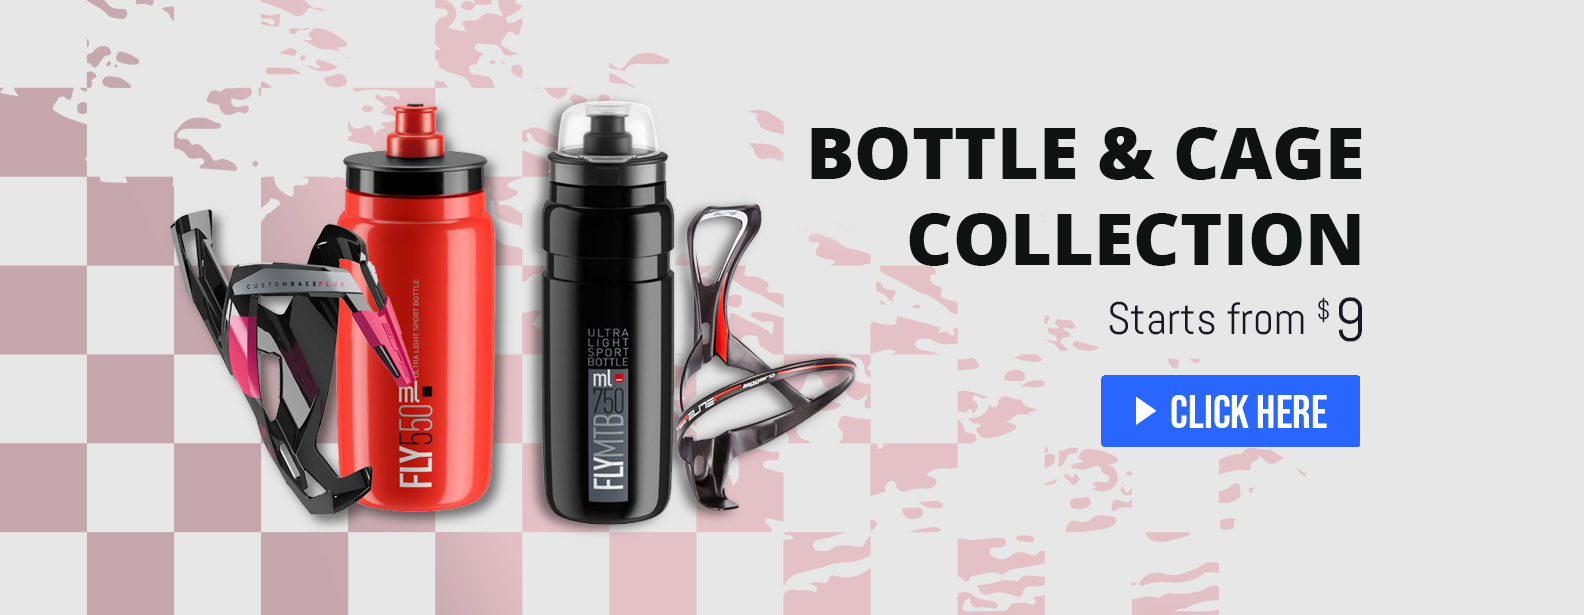 Buy Bottle & Cage Collection